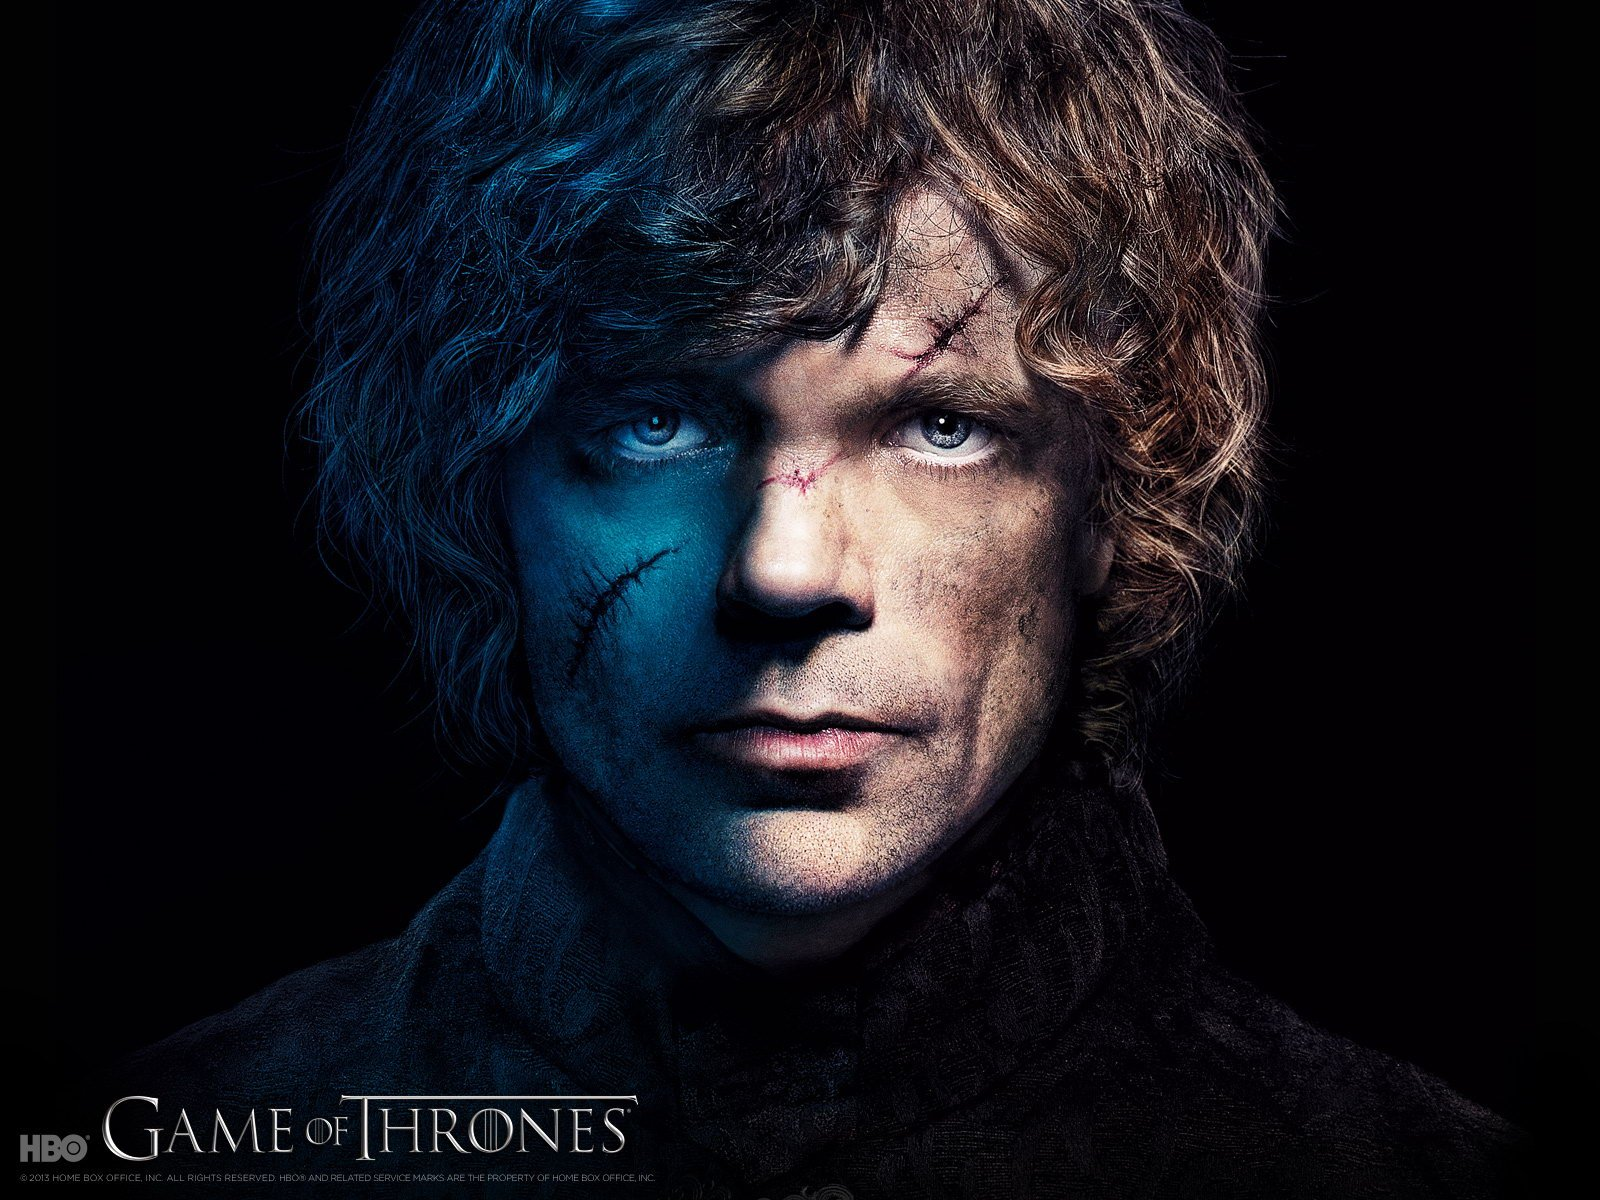 game of thrones wallpapers hbo gamehbo drama game of thrones season 3 1600x1200